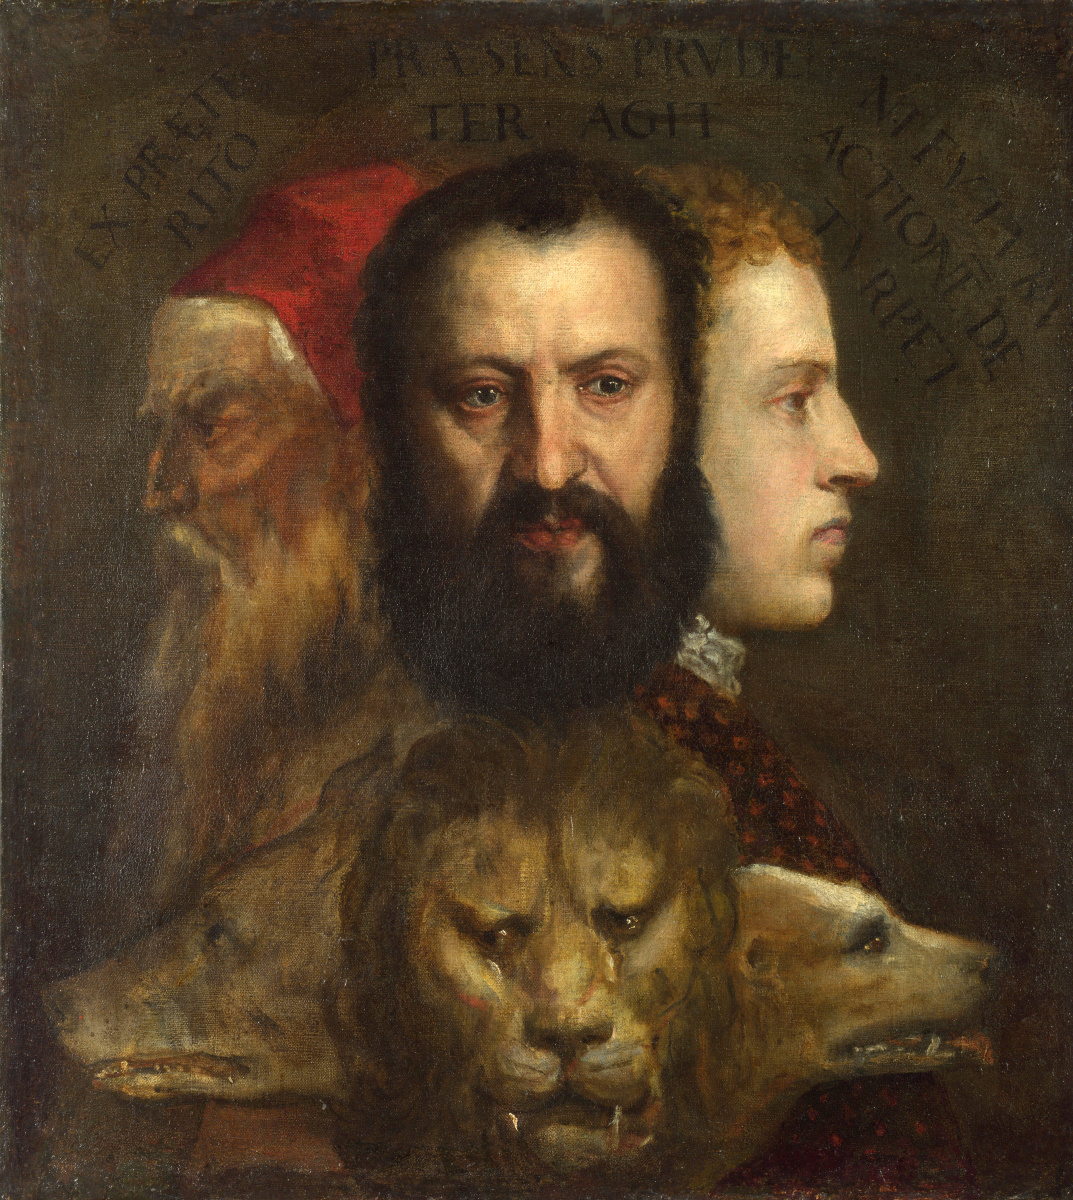 Titian Vecelli. Allegory of prudence